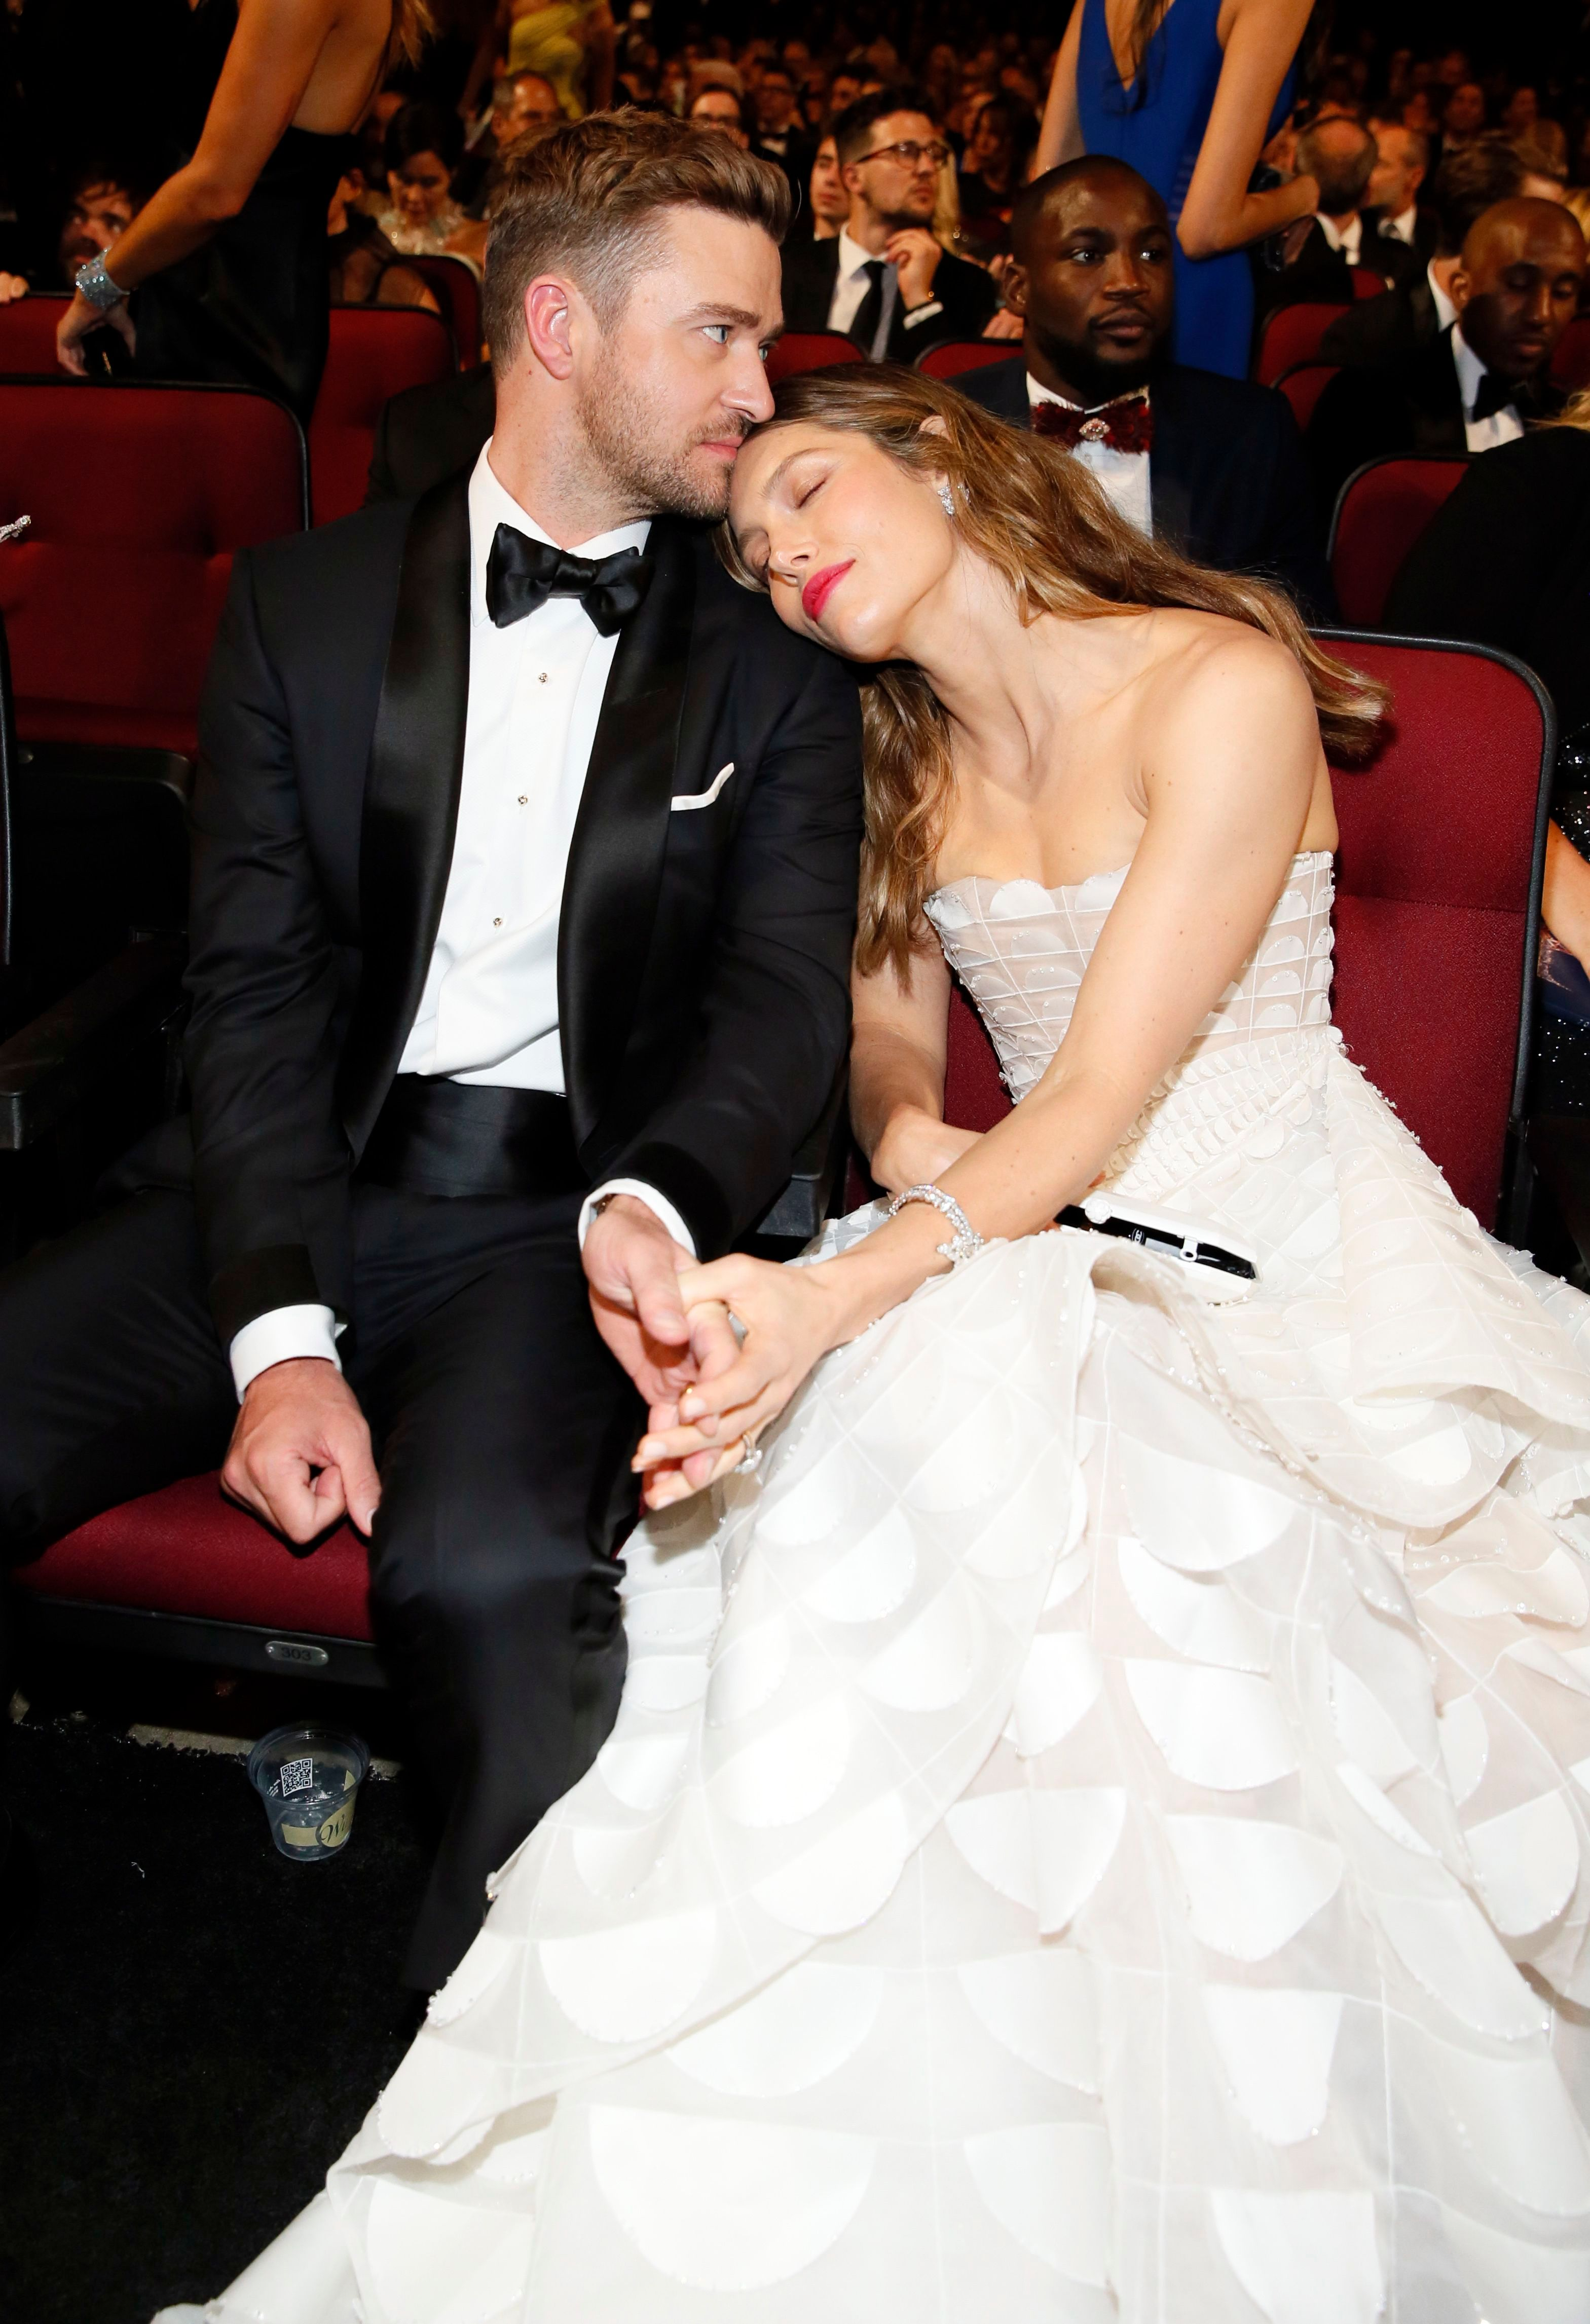 Jessica Biel Admits She Knew Husband Justin Timberlake Was The One for Her 'Early On'